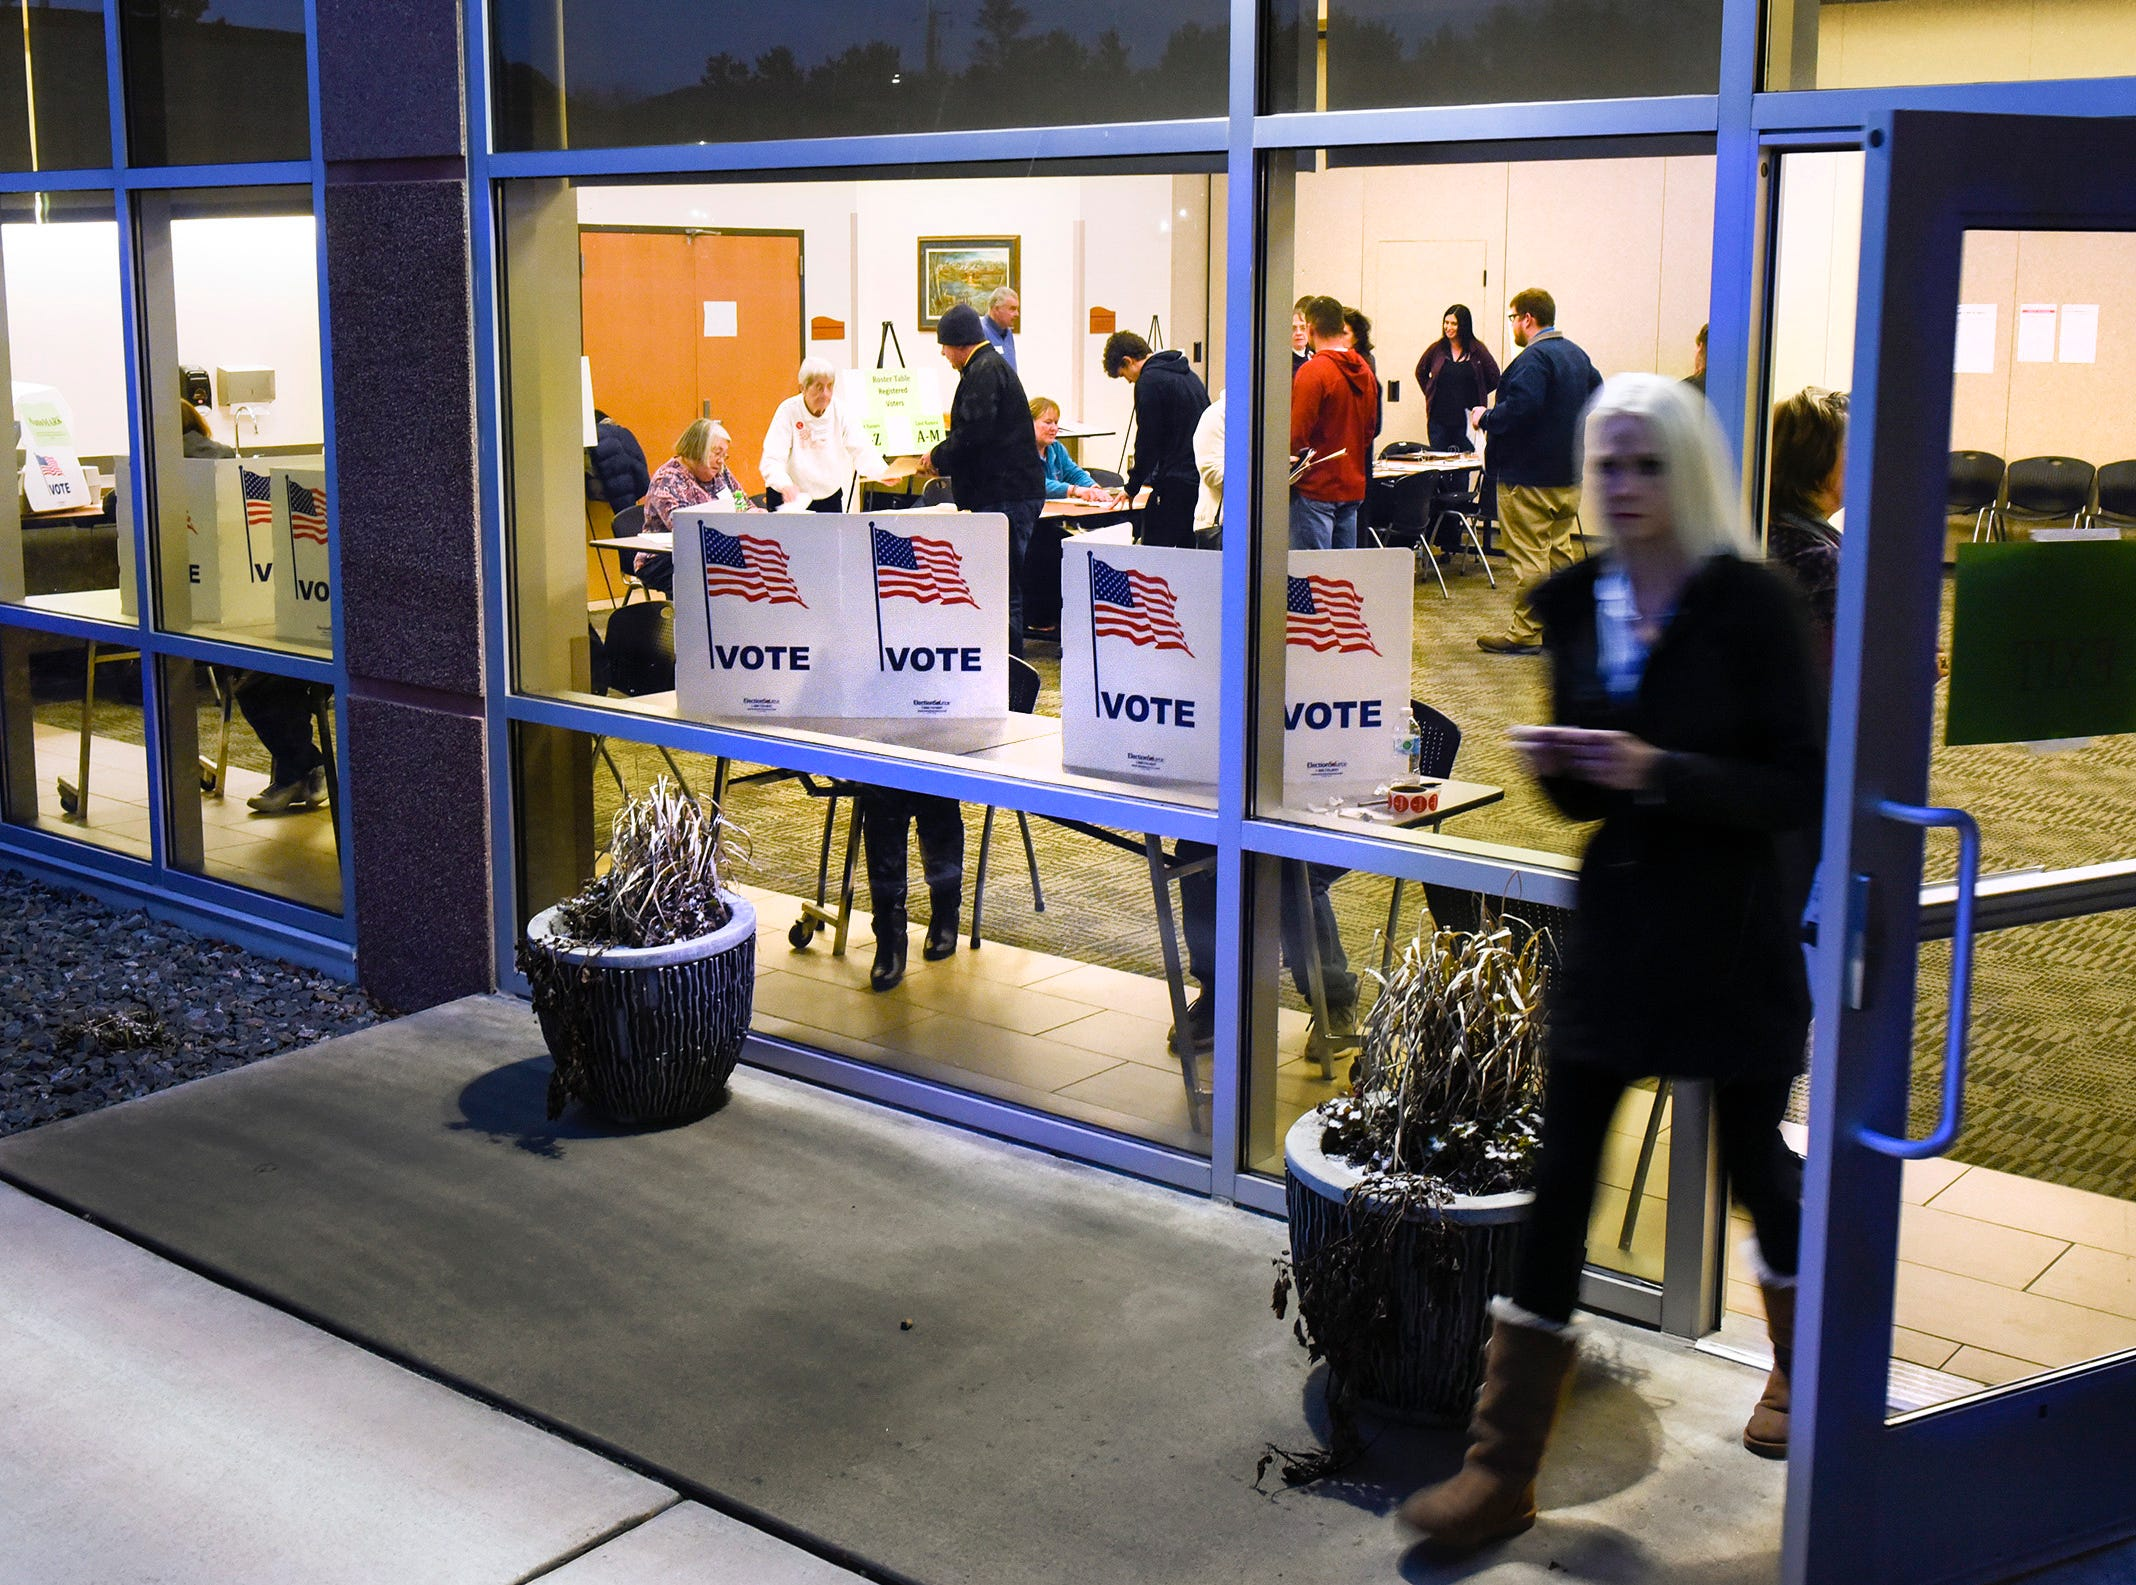 Voters flow through the Sauk Rapids Government Center Tuesday, Nov. 6, to cast their ballots.